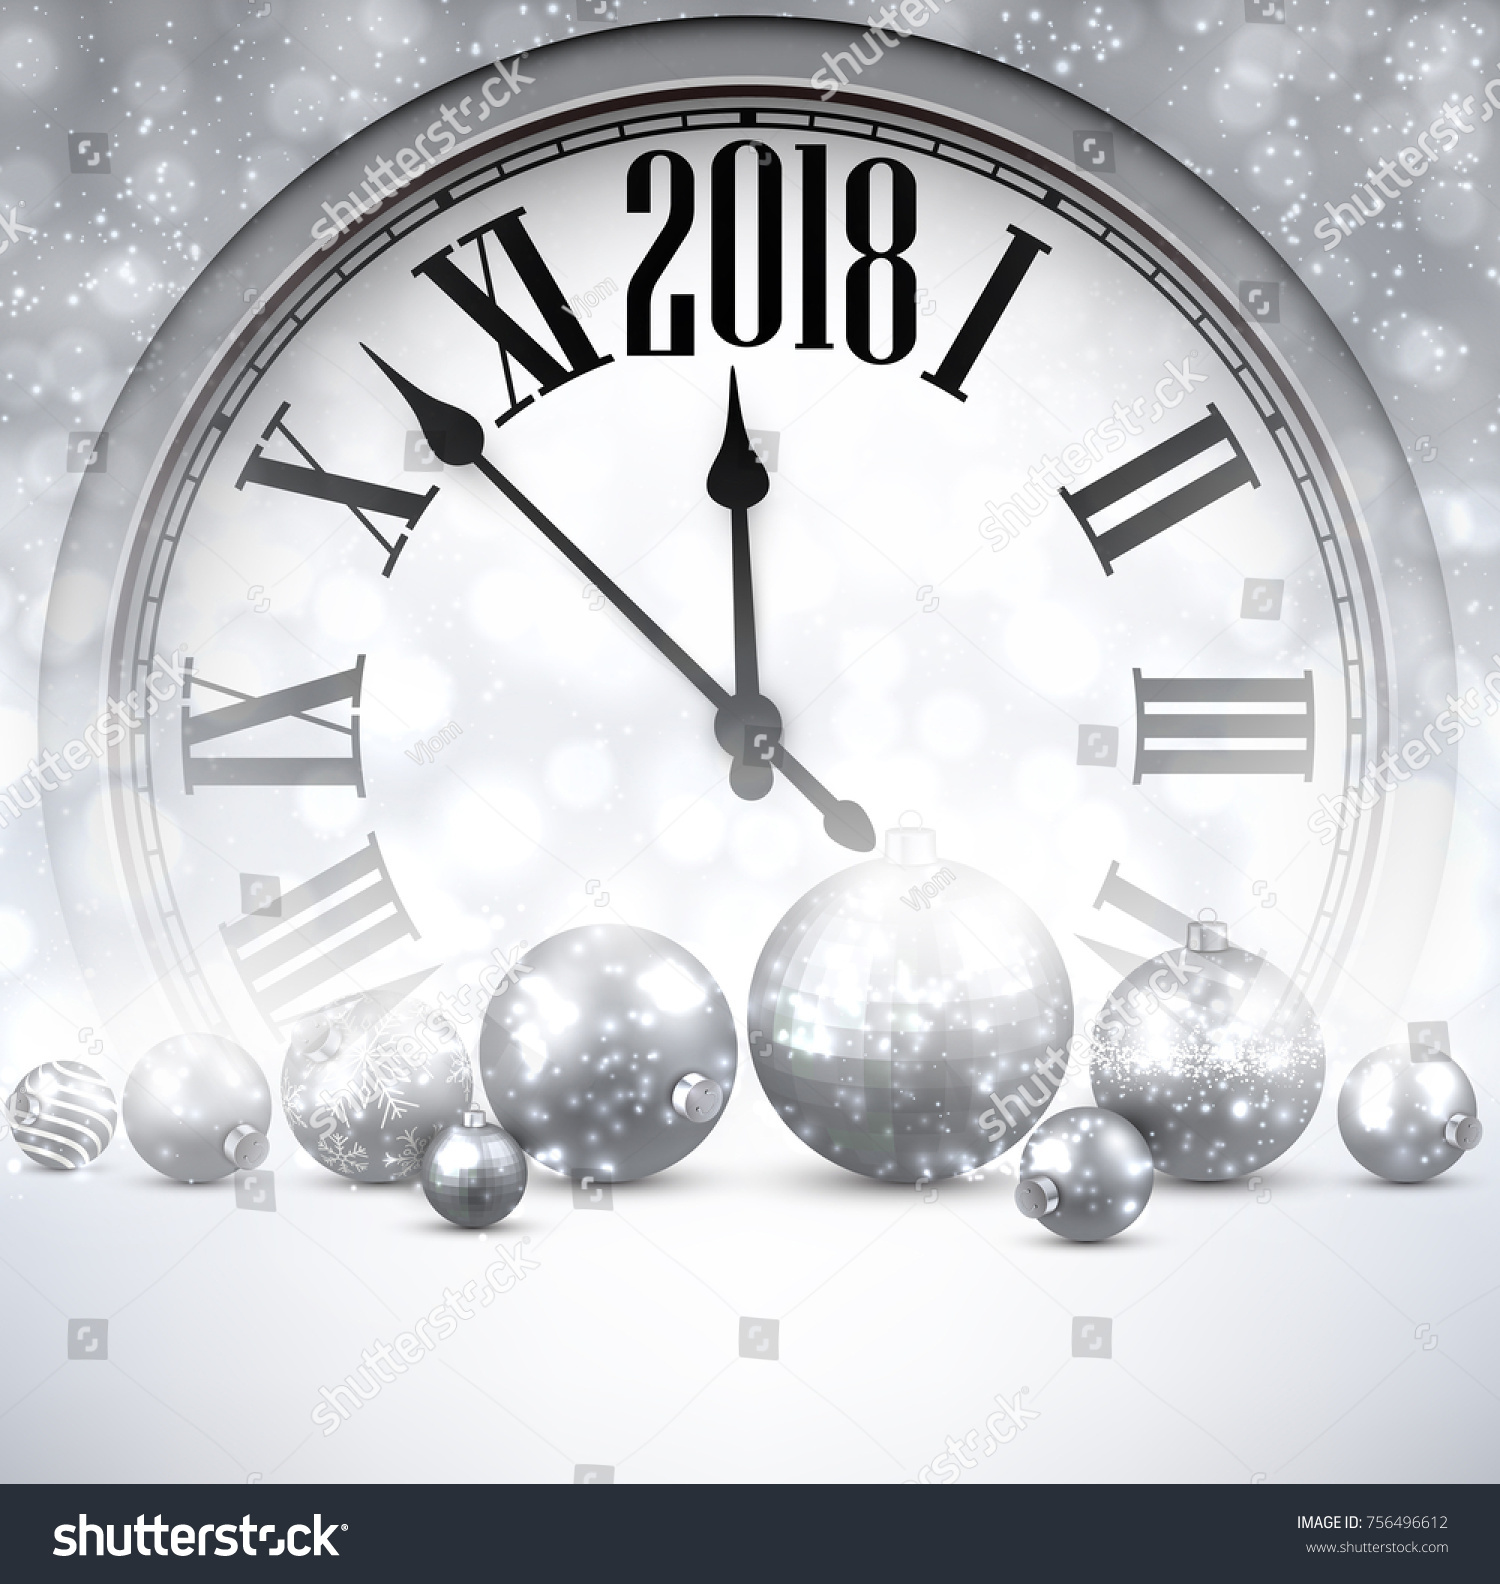 silver 2018 new year background with clock and balls vector illustration